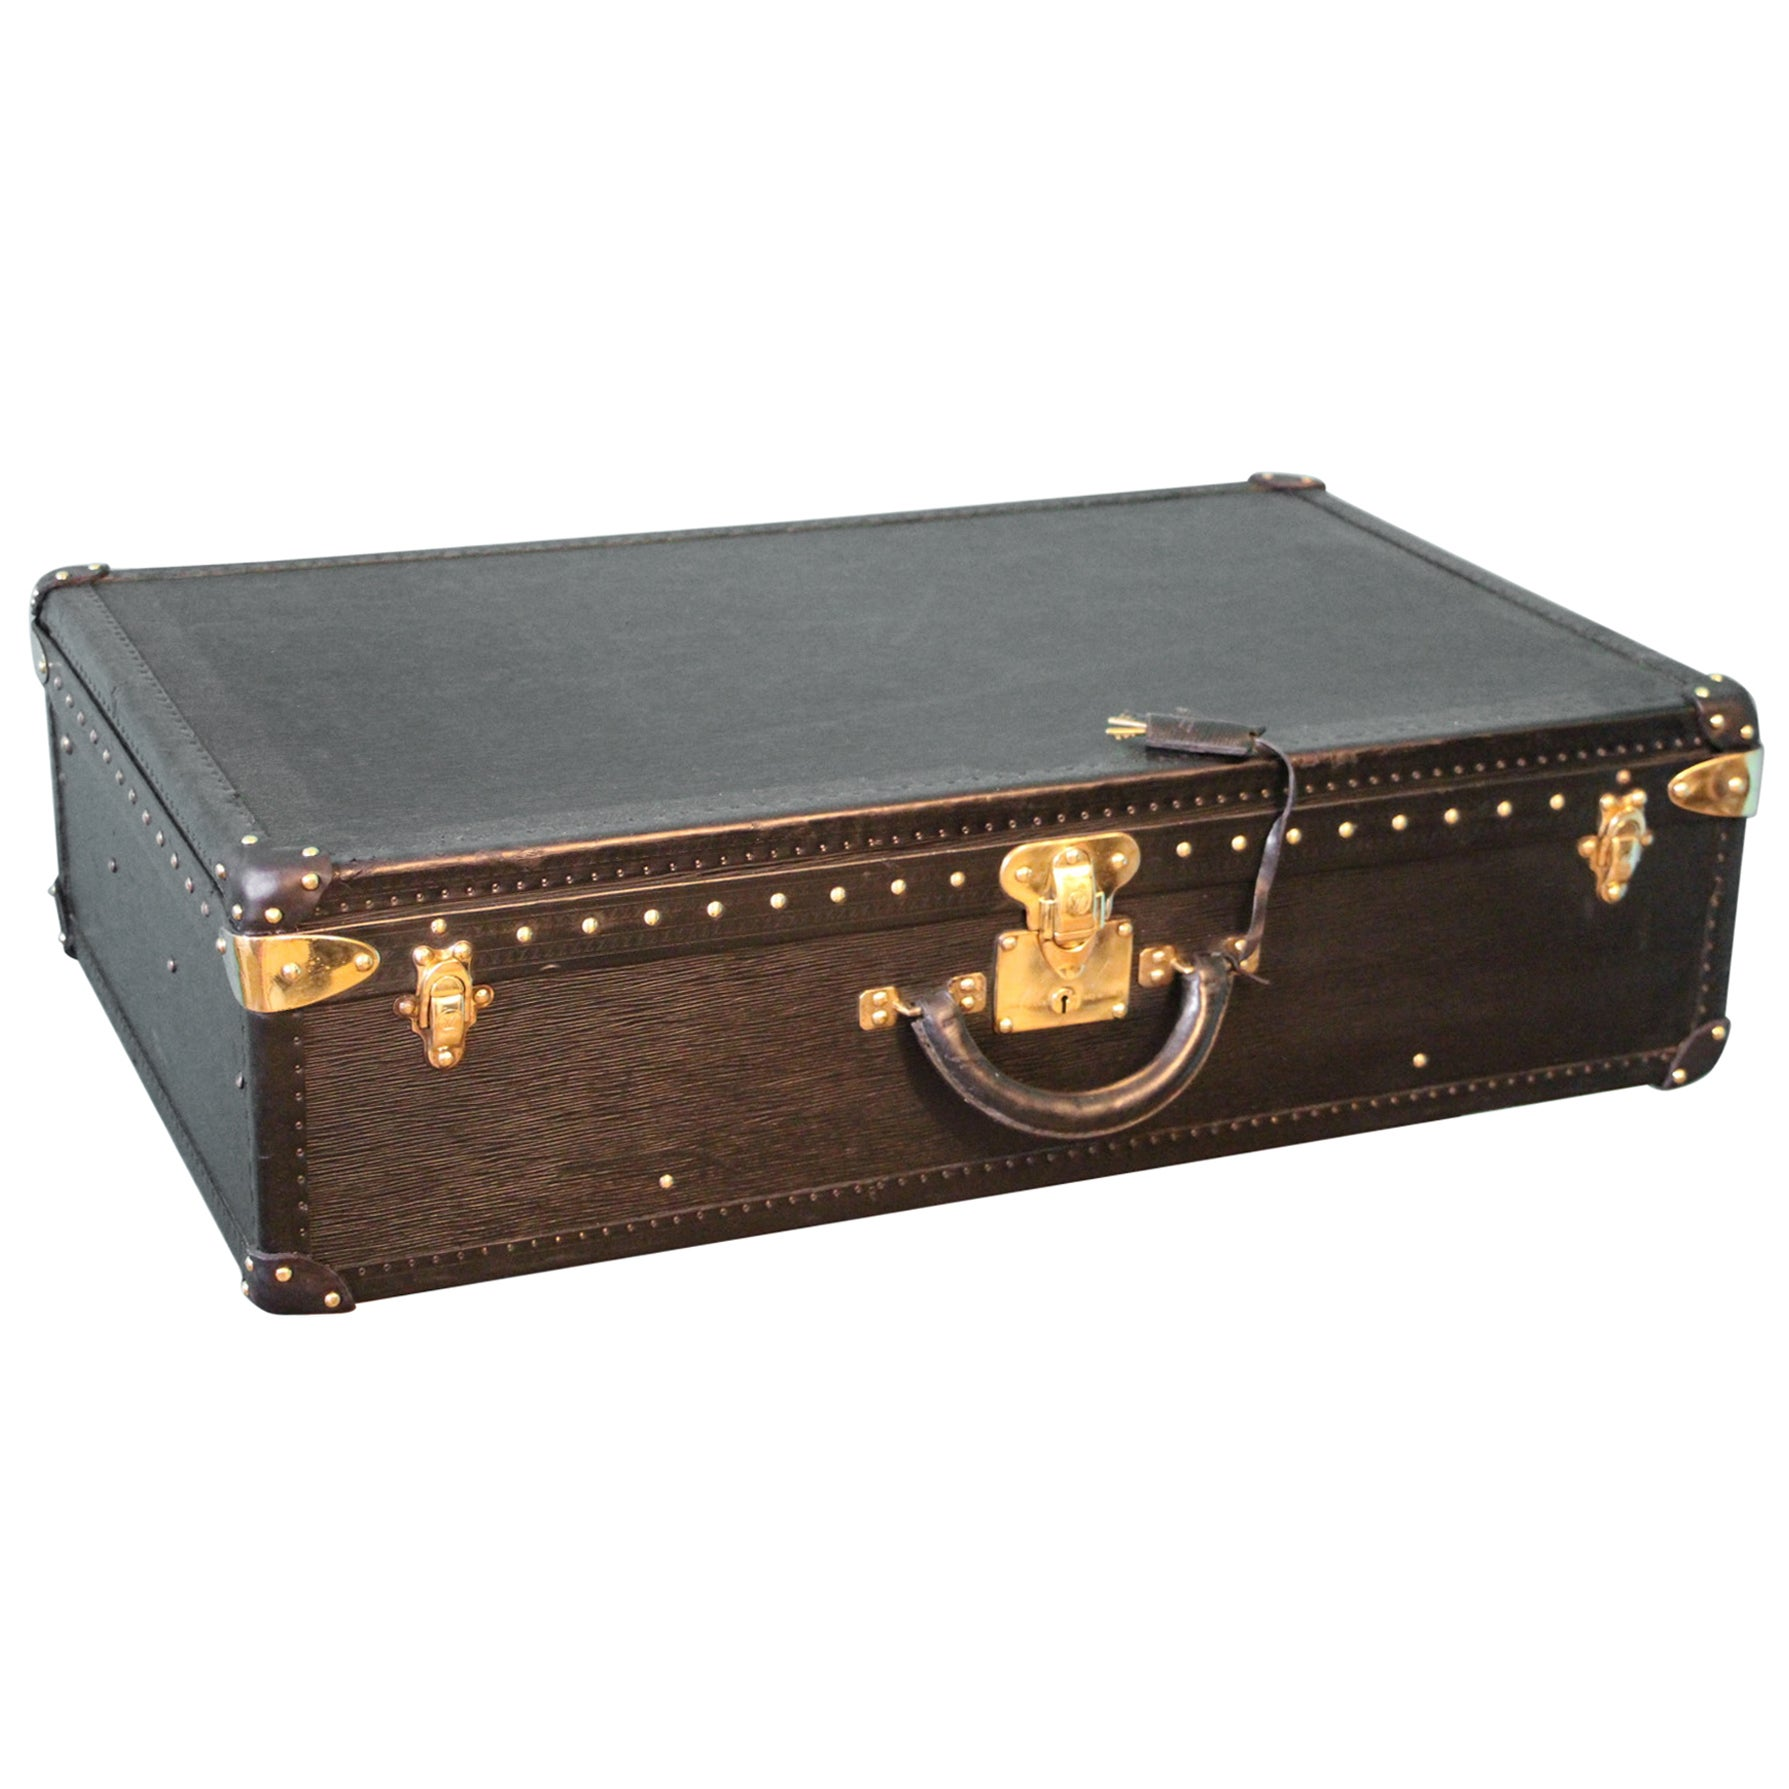 Black Louis Vuitton Alzer 80 Suitcase Louis Vuitton Suitcase Louis Vuitton Trunk